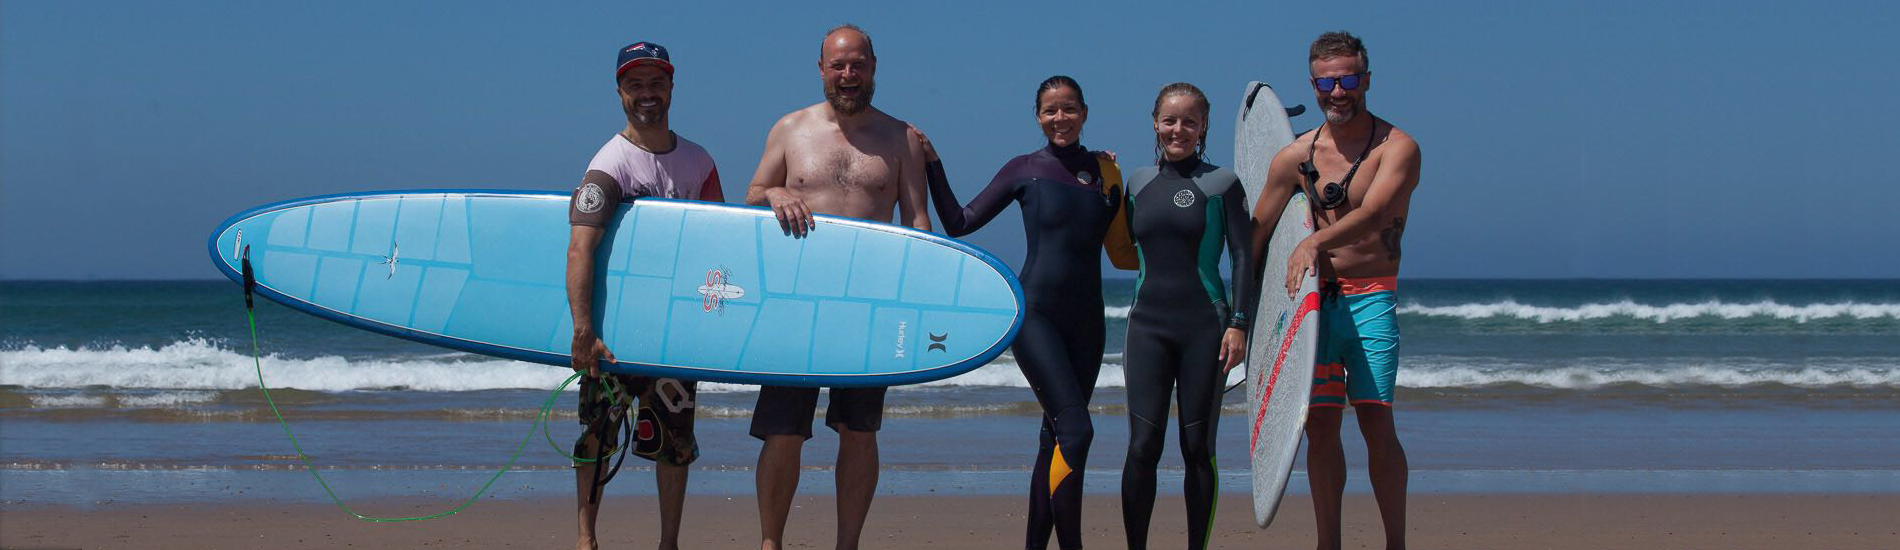 Surya Style surfer group